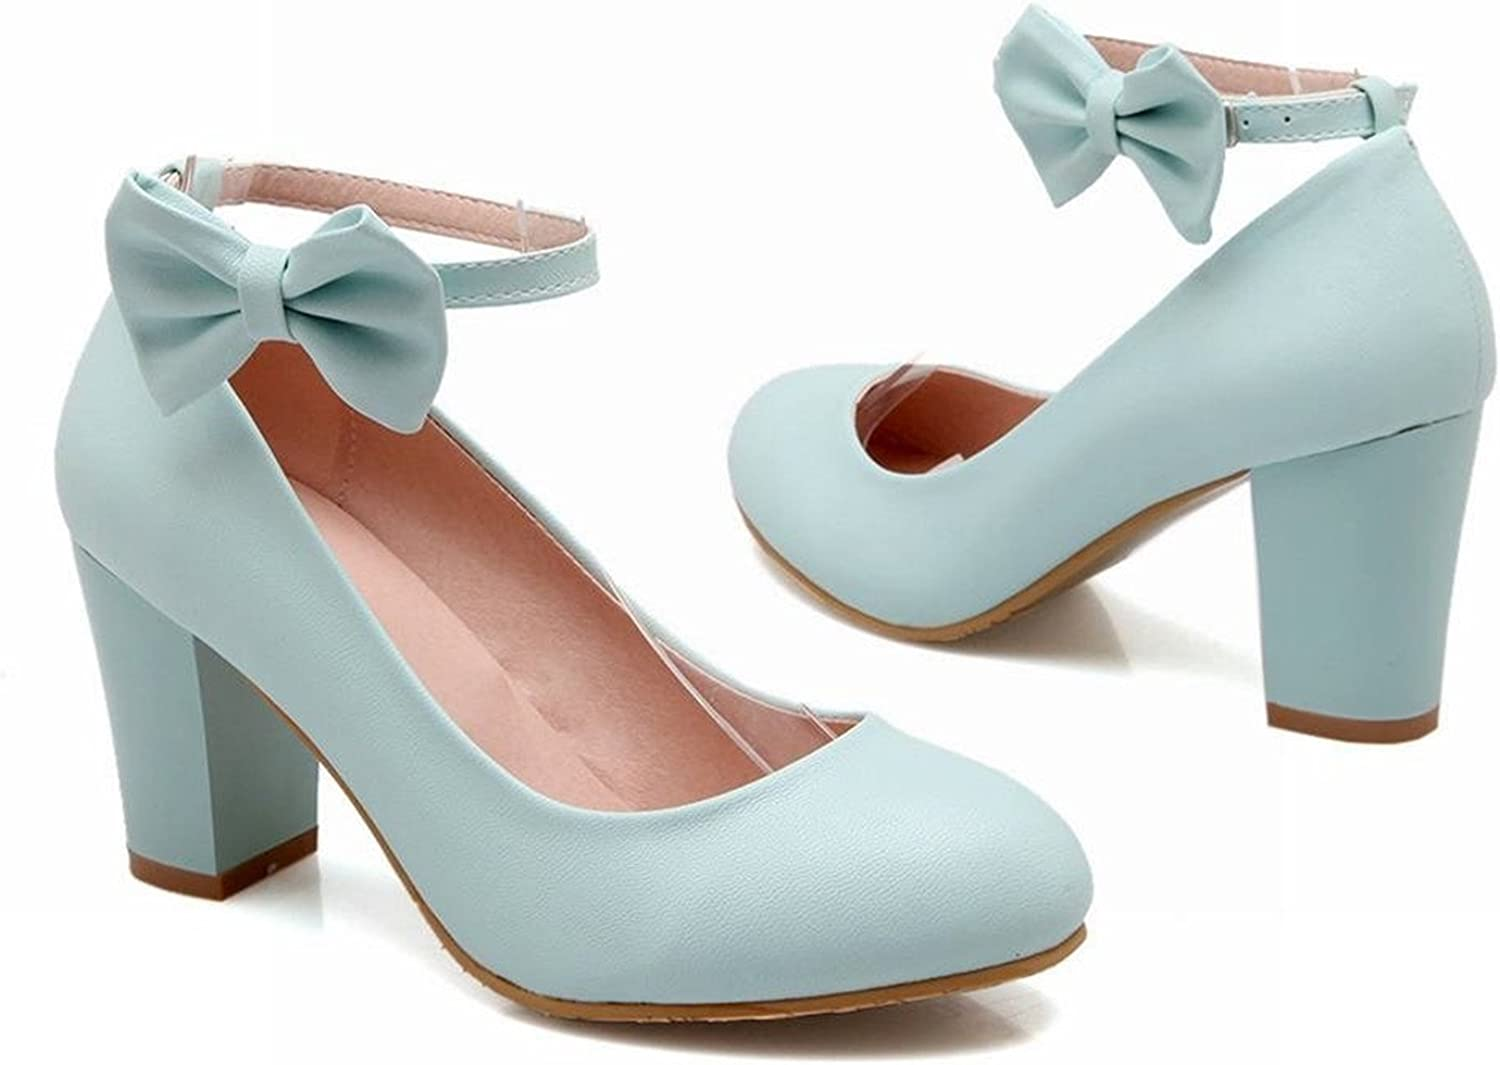 Tirahse Sweet Women's Buckle Bows Lolita Ankle Strap Chunky High Heel Dress Pumps Mary Janes shoes